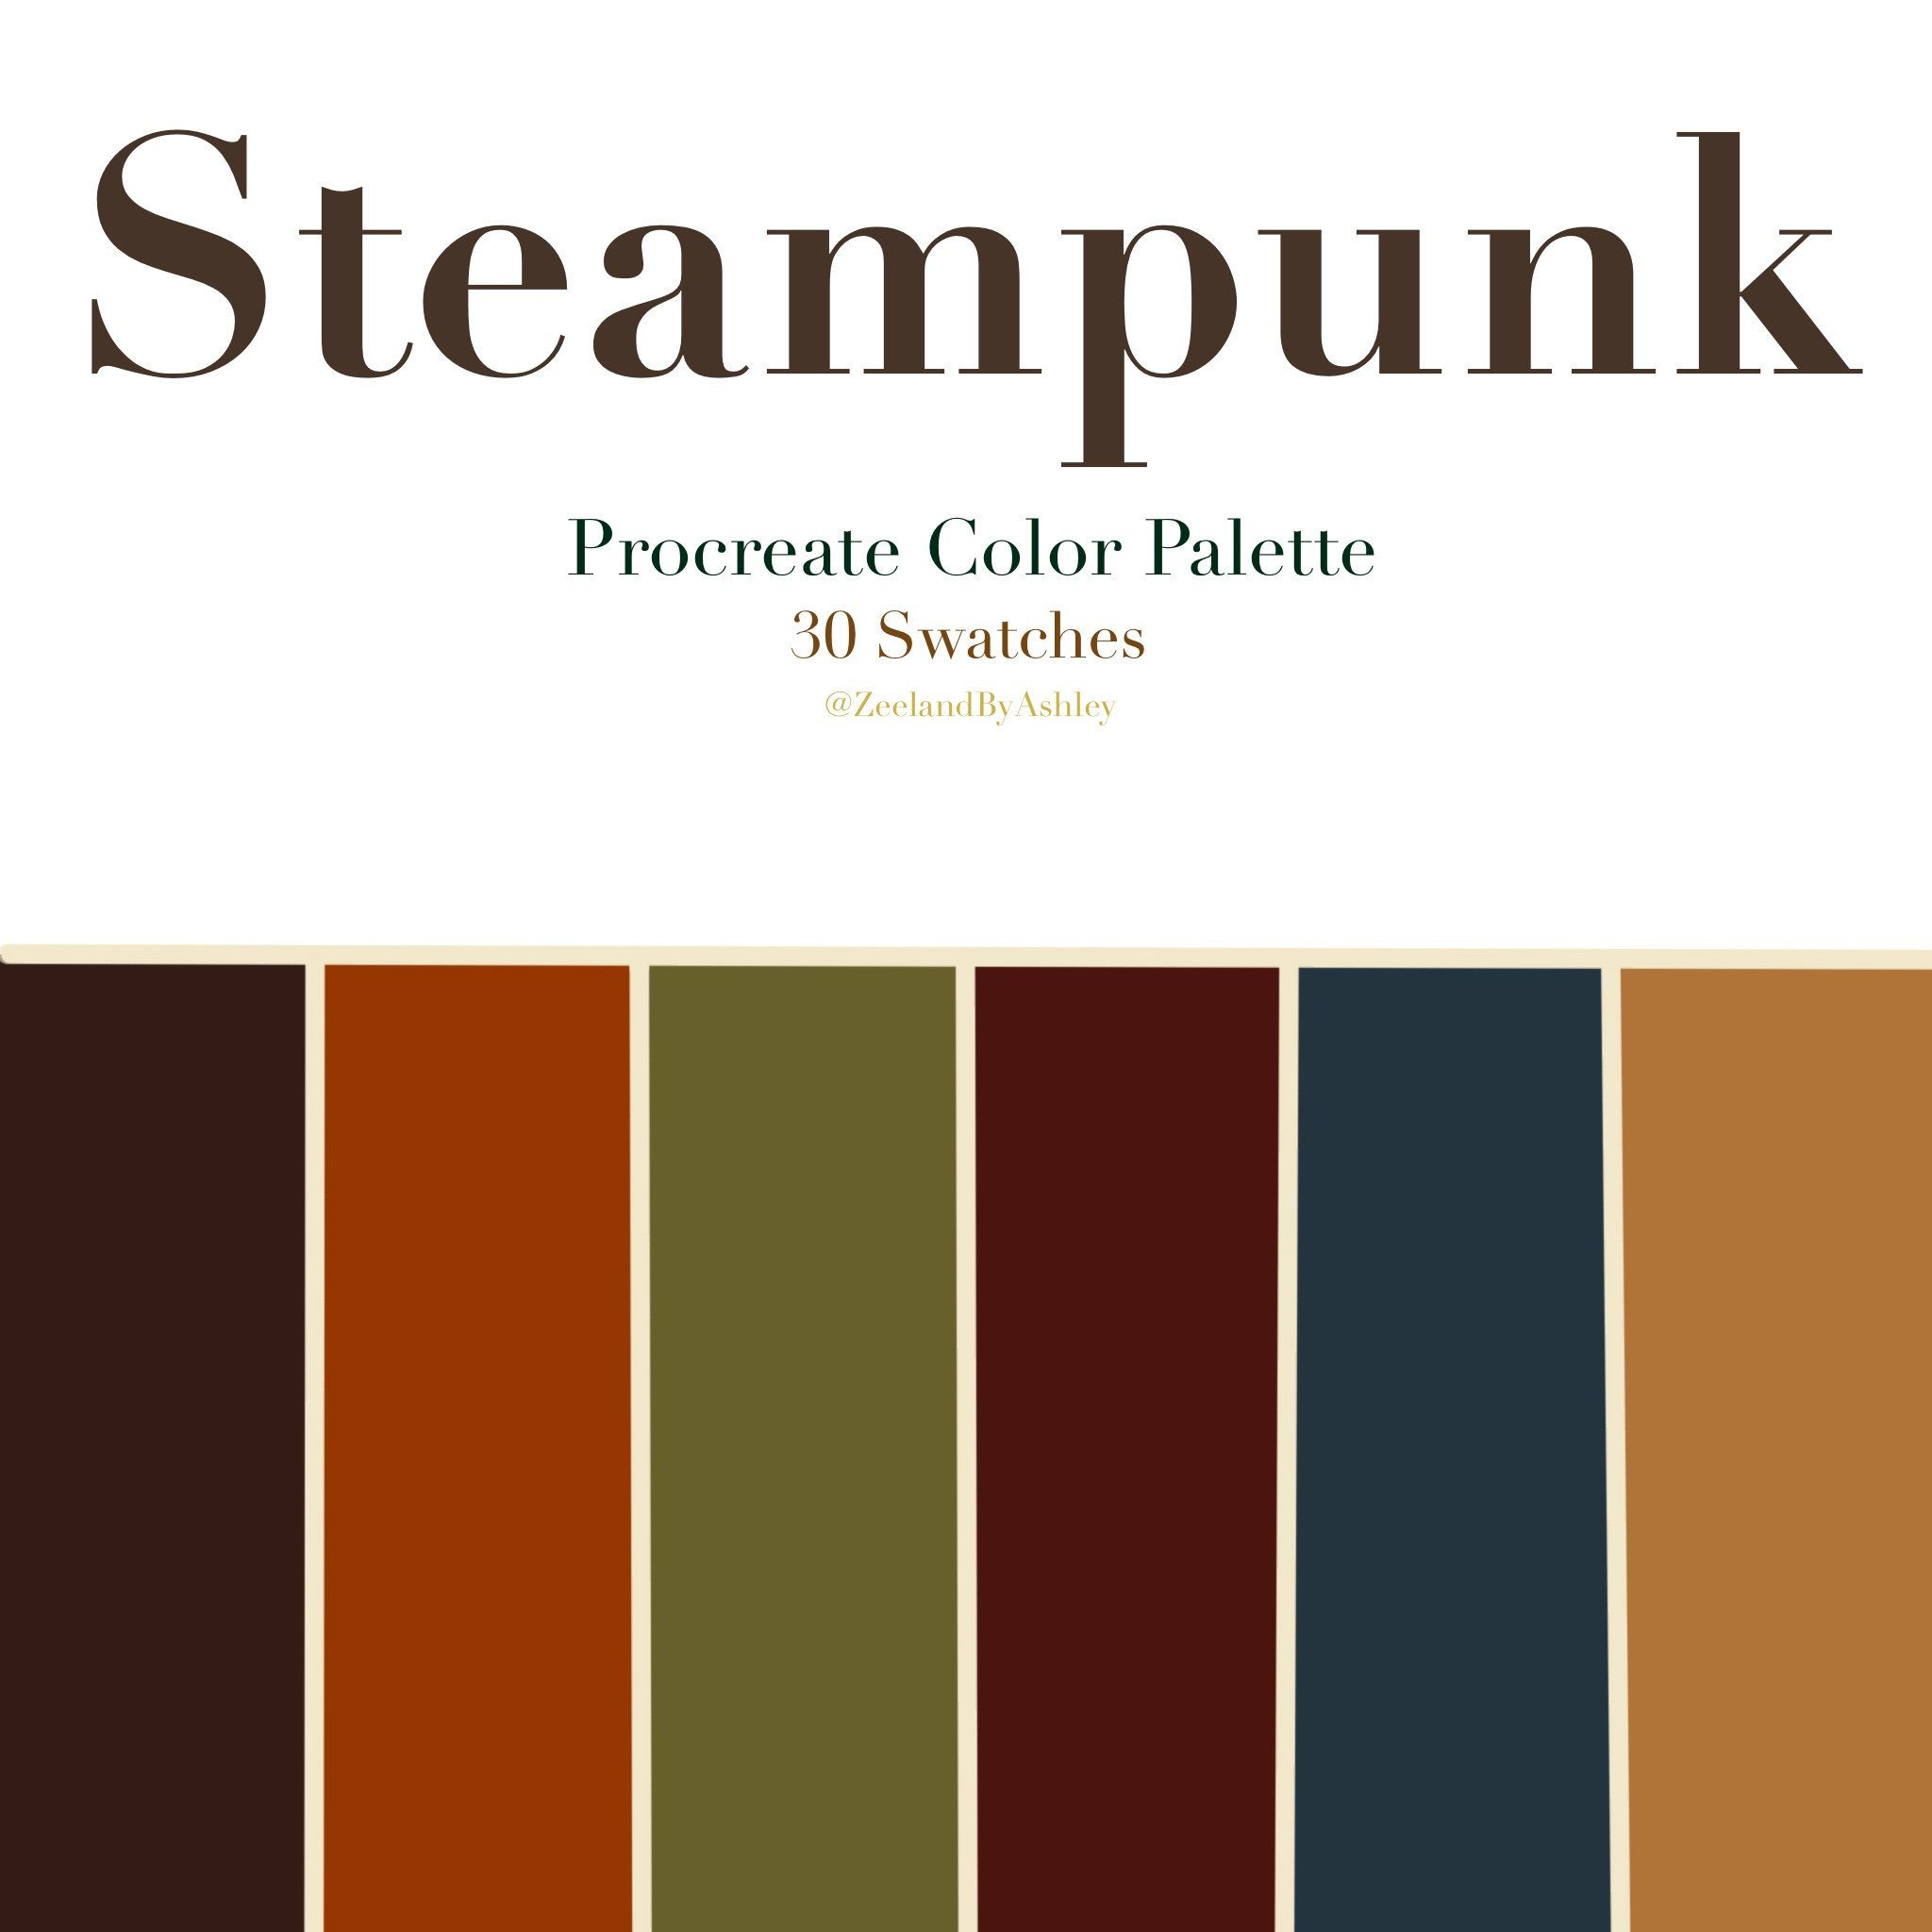 Steampunk Inspired Procreate Color Palette 30 Swatches Instant Download In 2021 Color Palette Color Schemes Colour Palettes Green Color Schemes